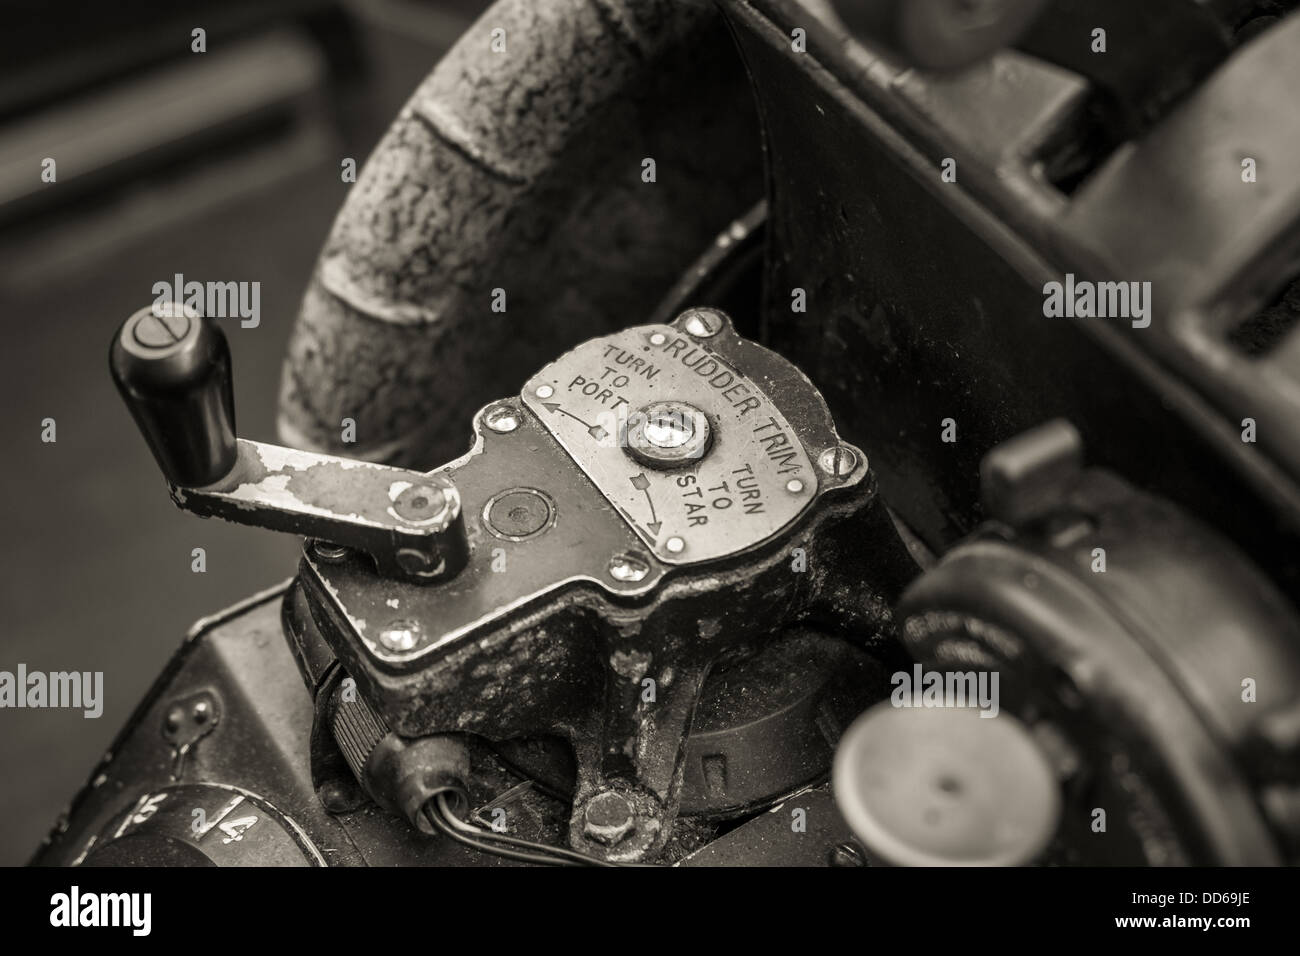 Close up view of an old war planes rudder trim controls Stock Photo